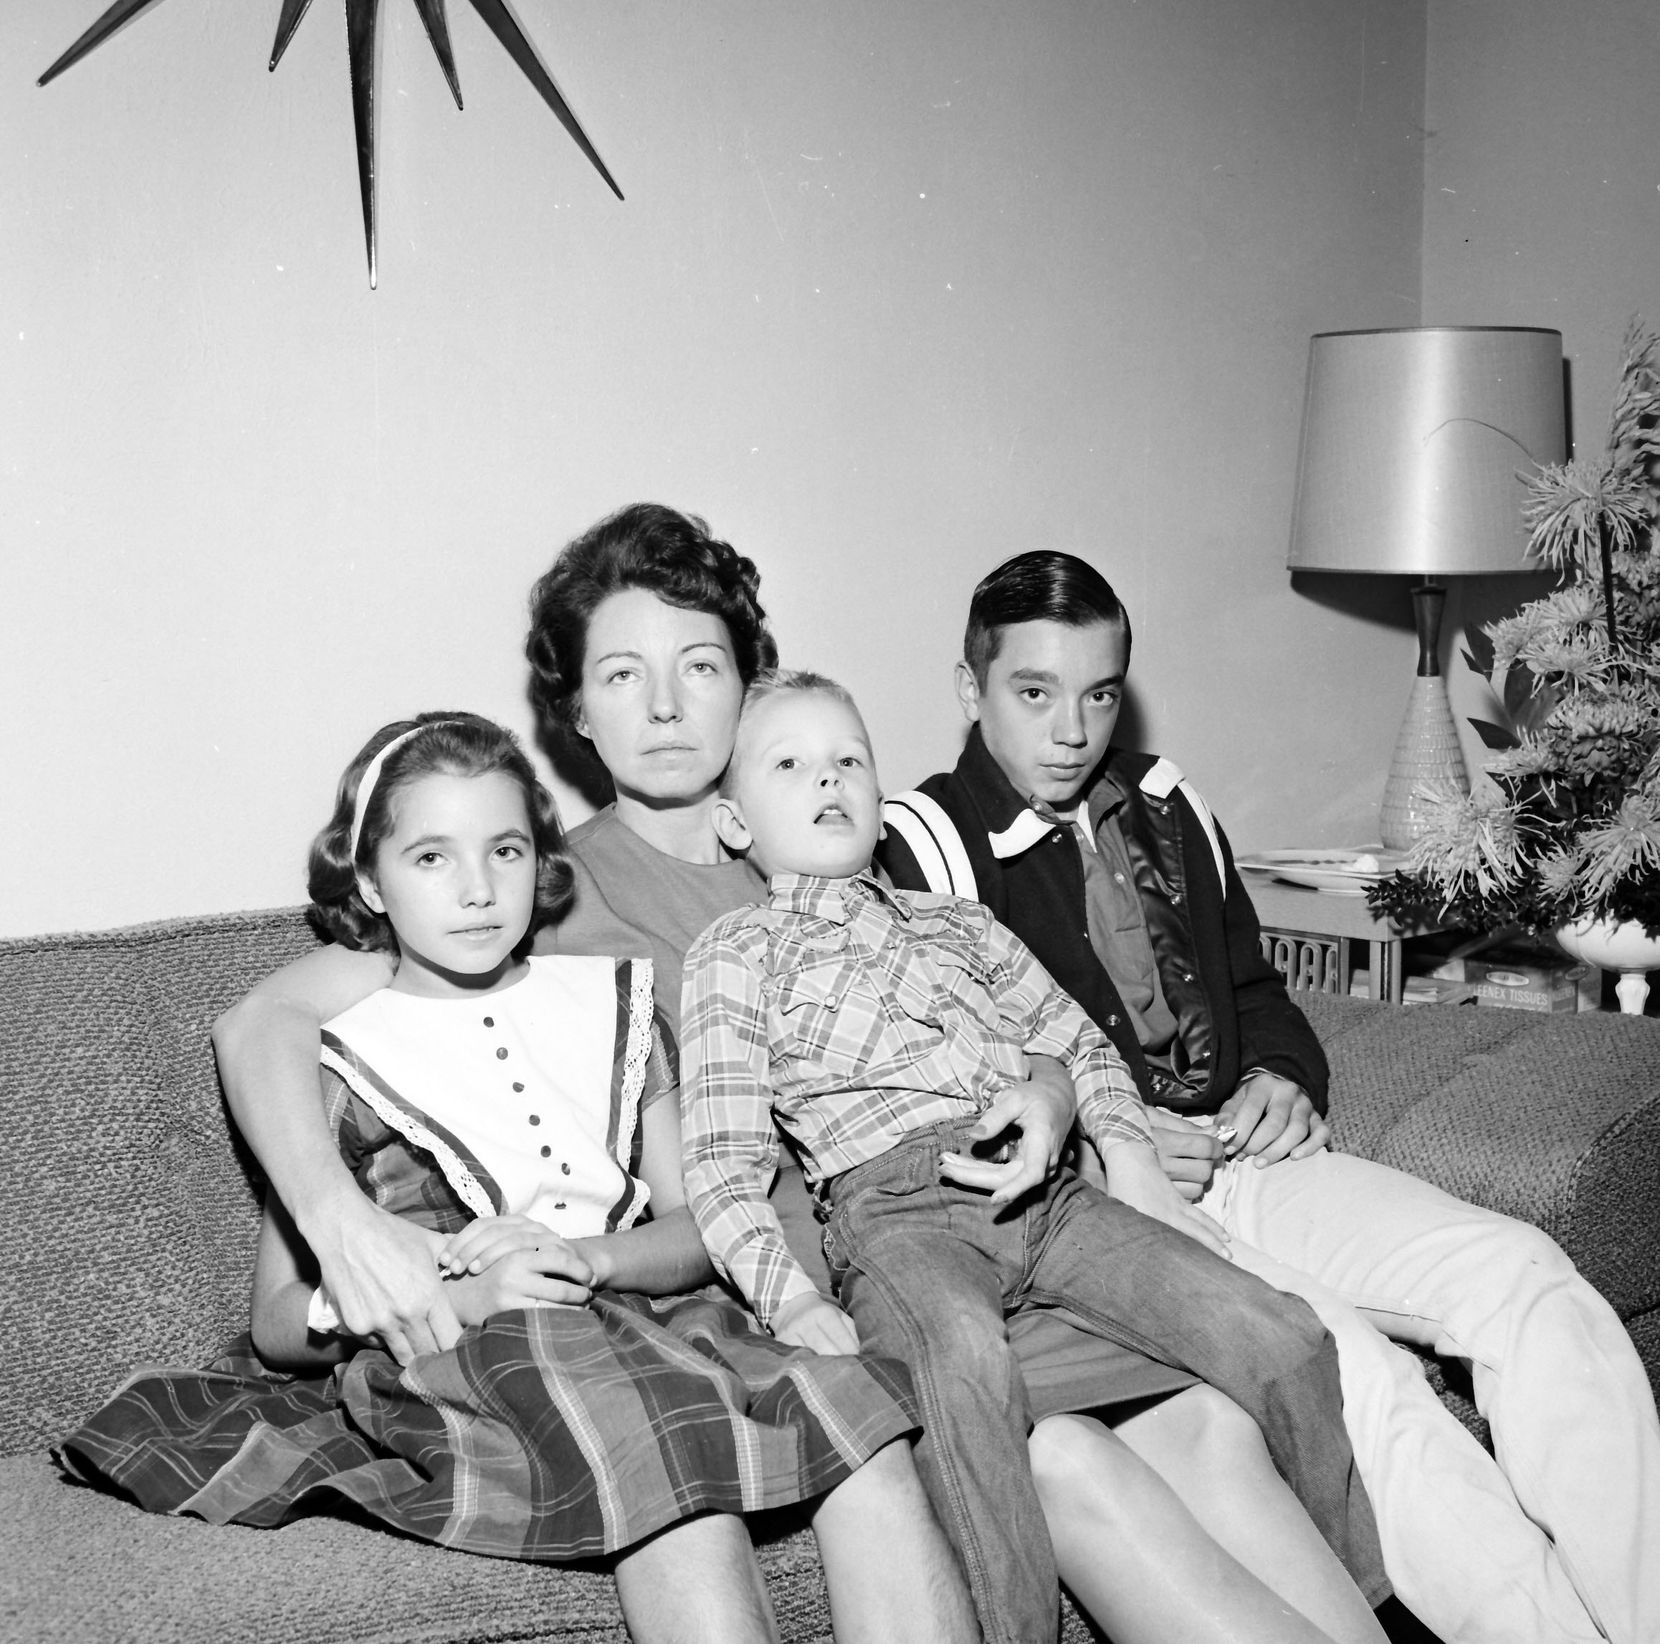 Marie Tippit and her children, Brenda, Curtis and Charles Allan, the day after J.D. Tippit was shot and killed.